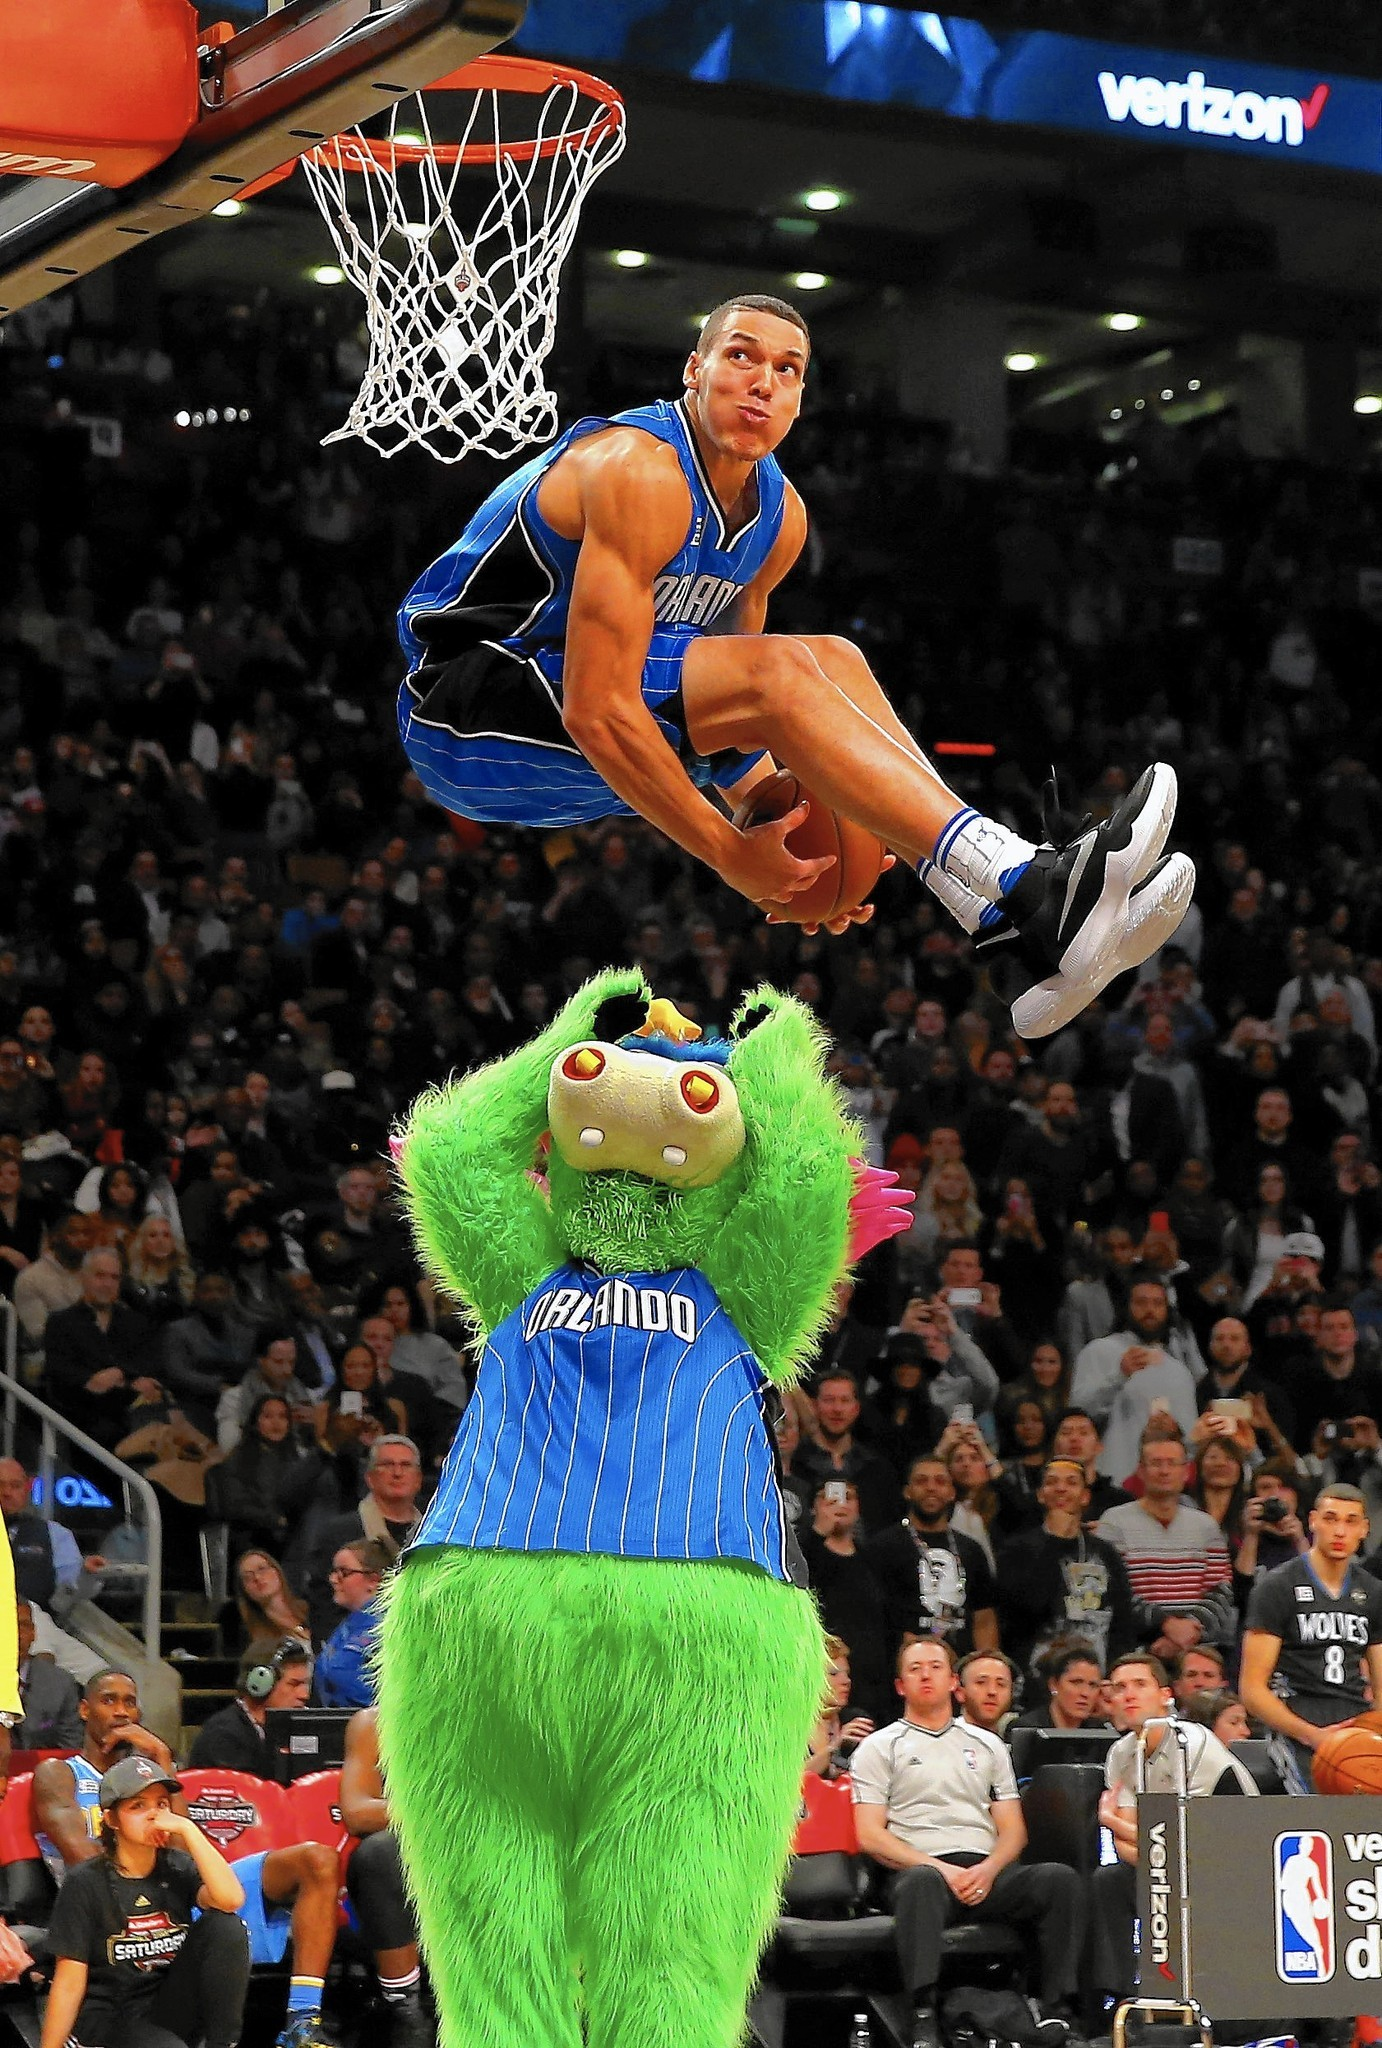 Image result for Aaron Gordon dunk contest dunk